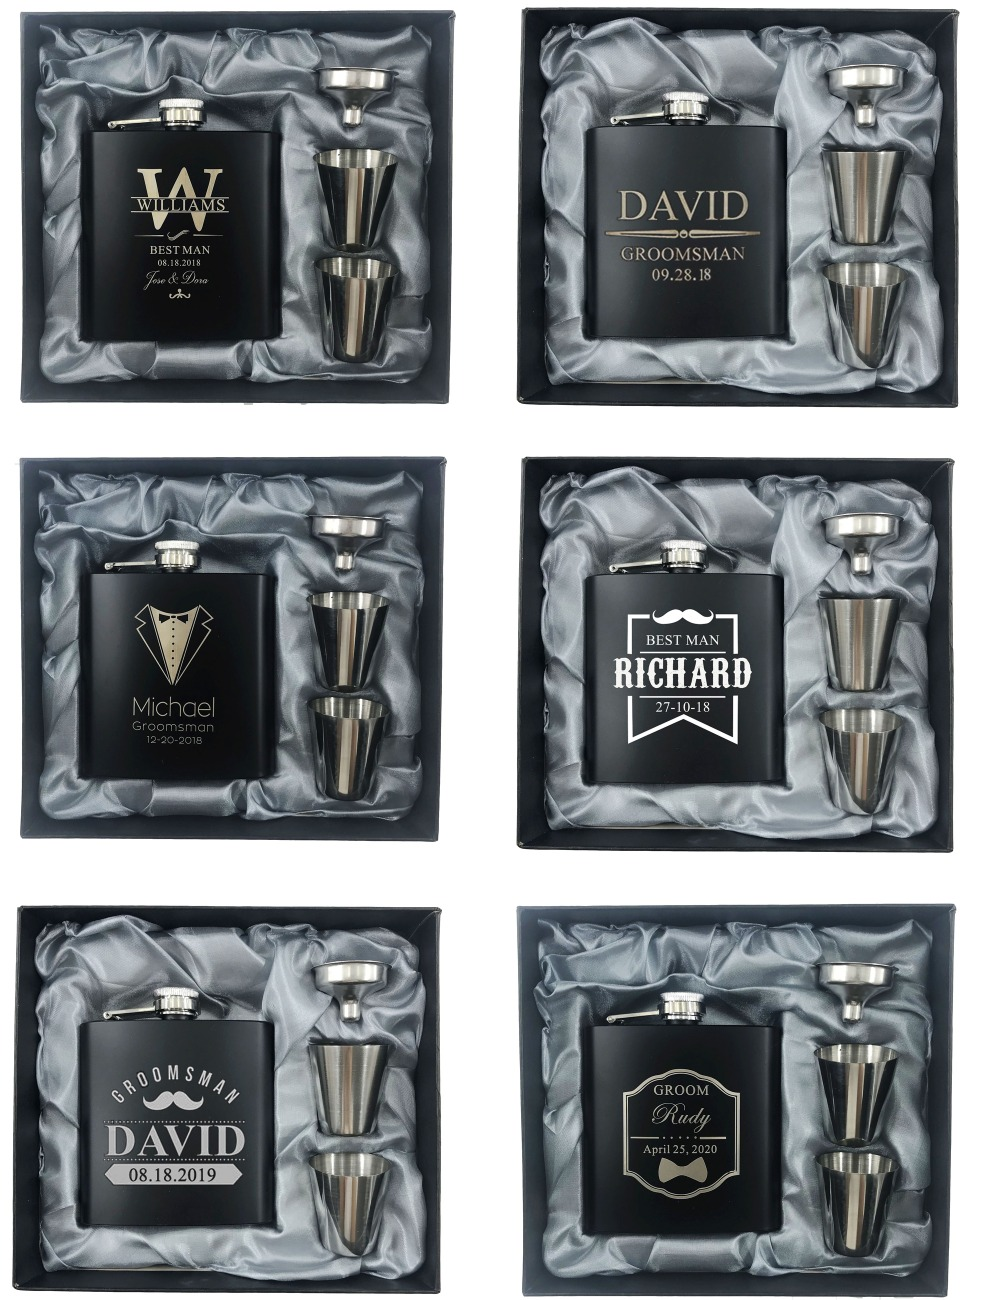 6 Set Personalized Engraved 6oz Black Stainless Steel Hip Flask With Box Wedding Favors Best Man